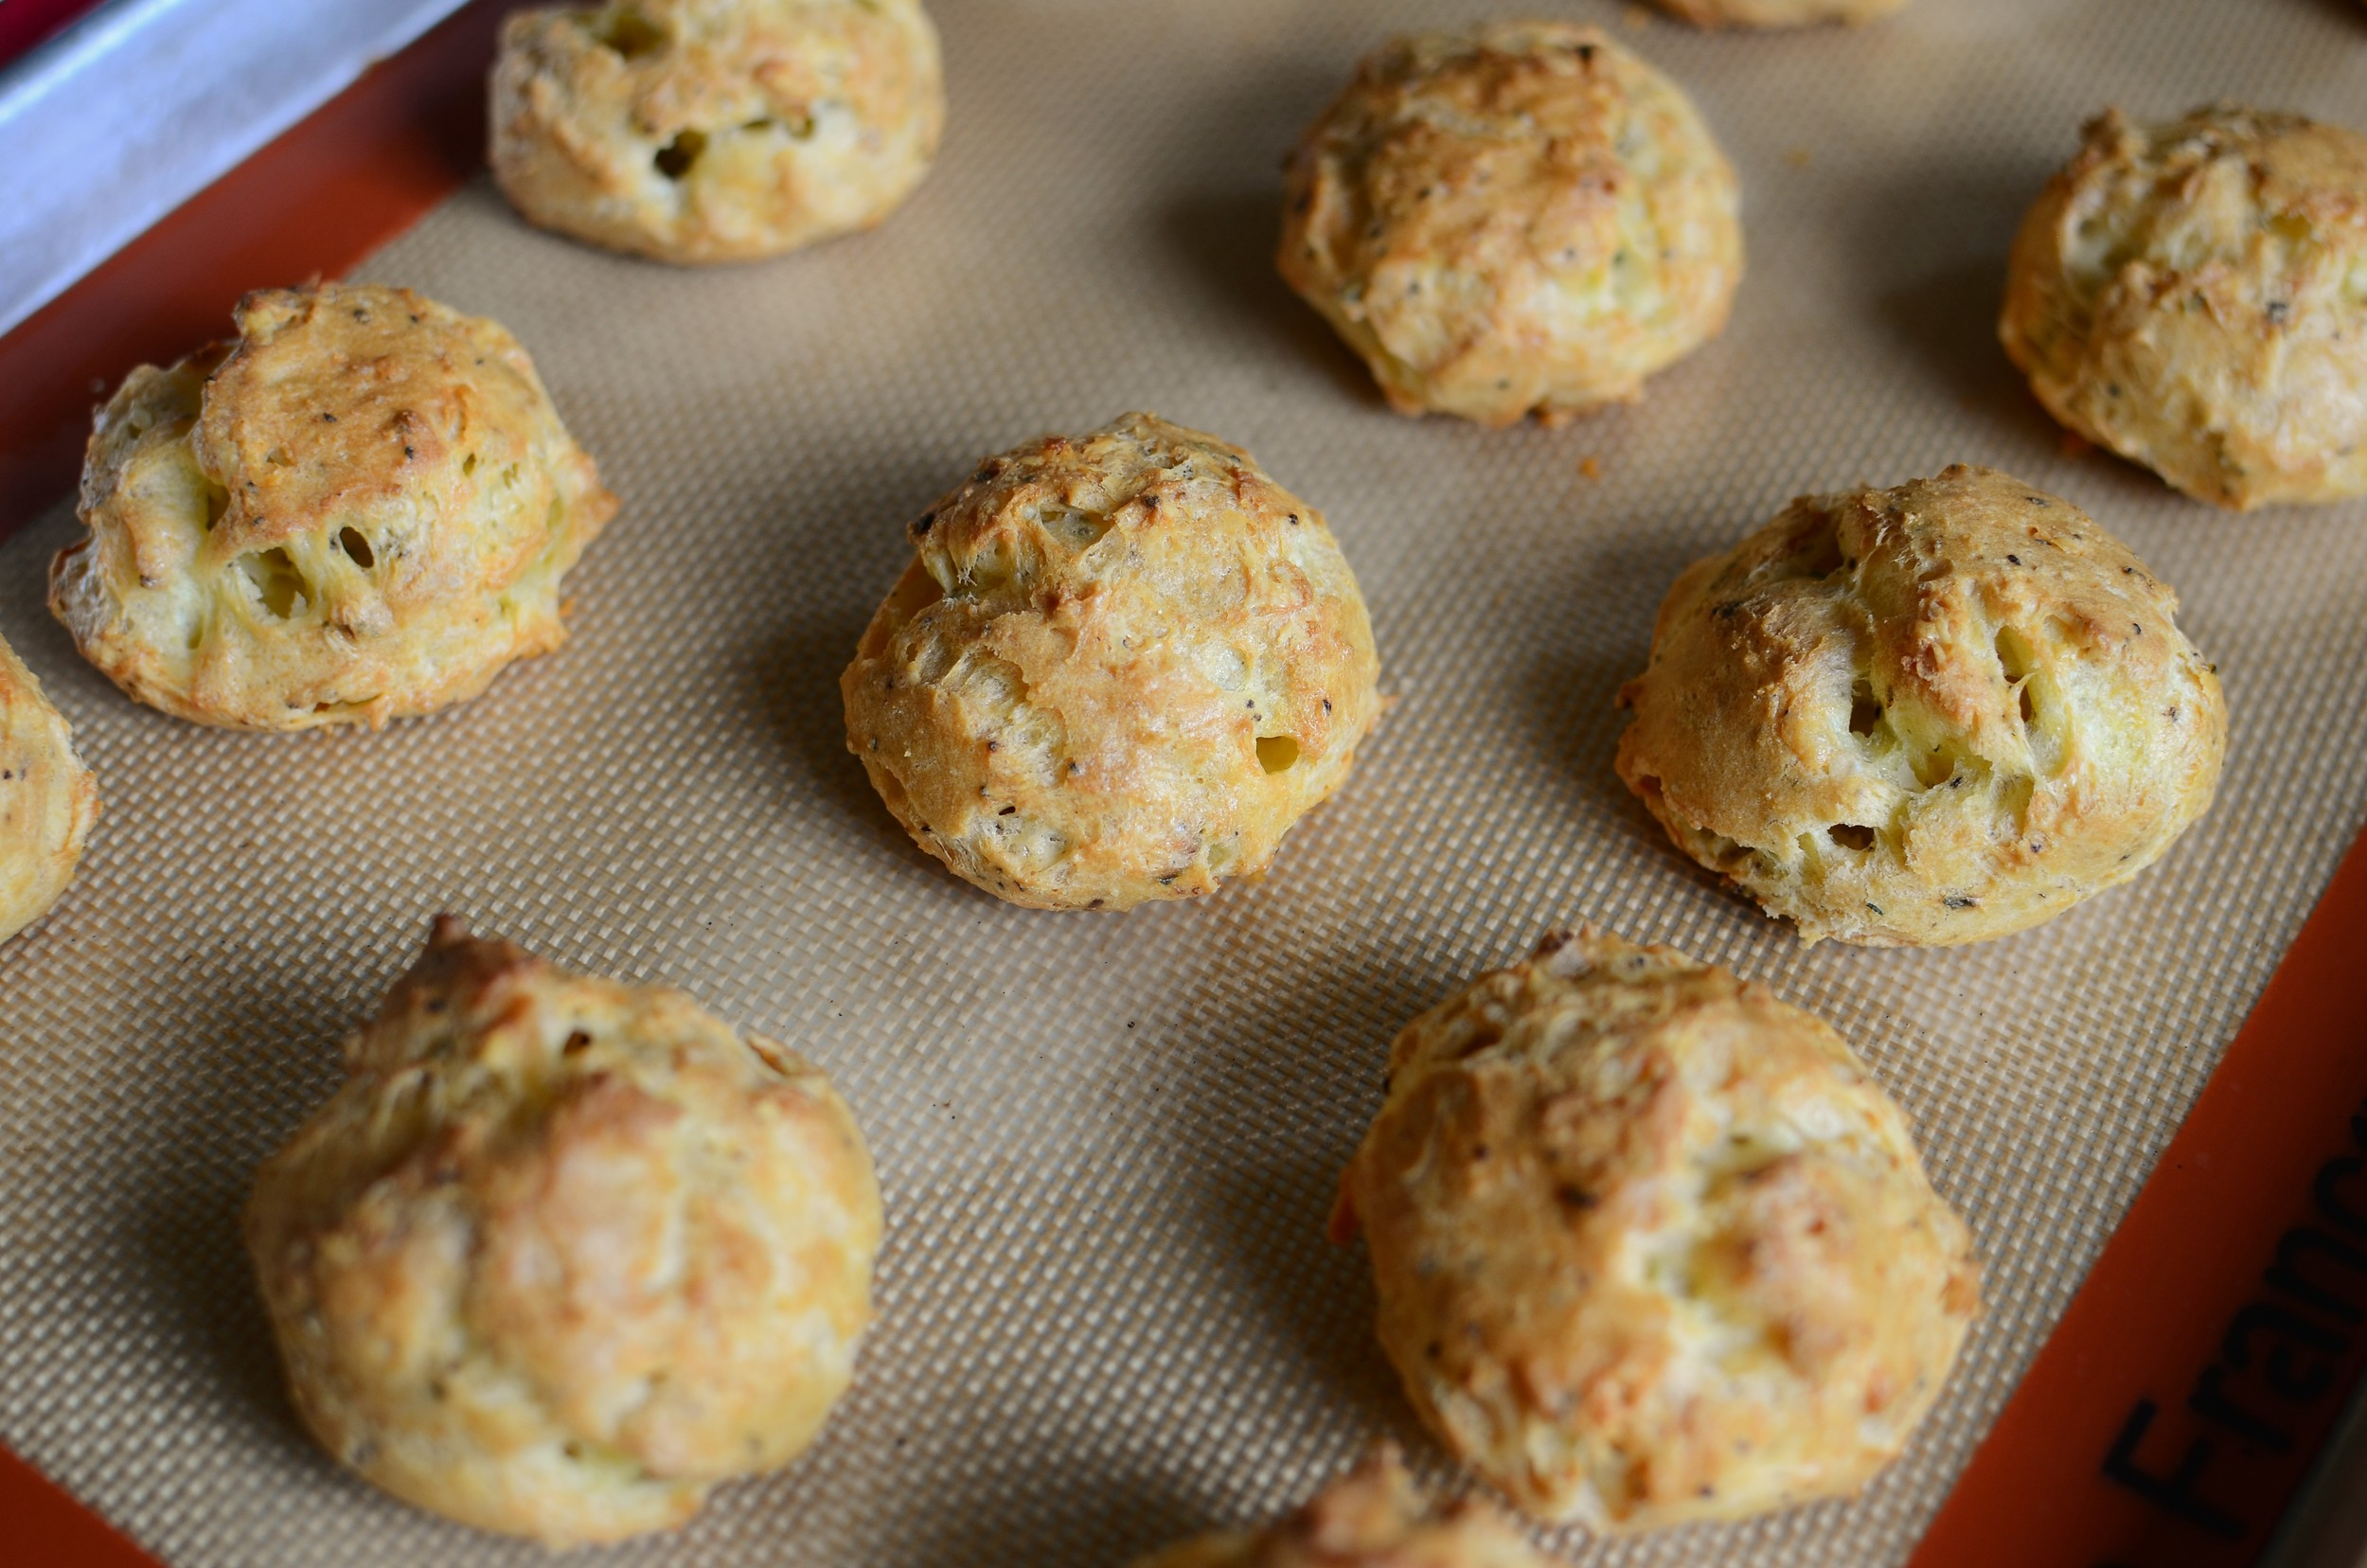 Black Pepper and Chive Gougeres (Savory Cheese Puffs) - ButterYum